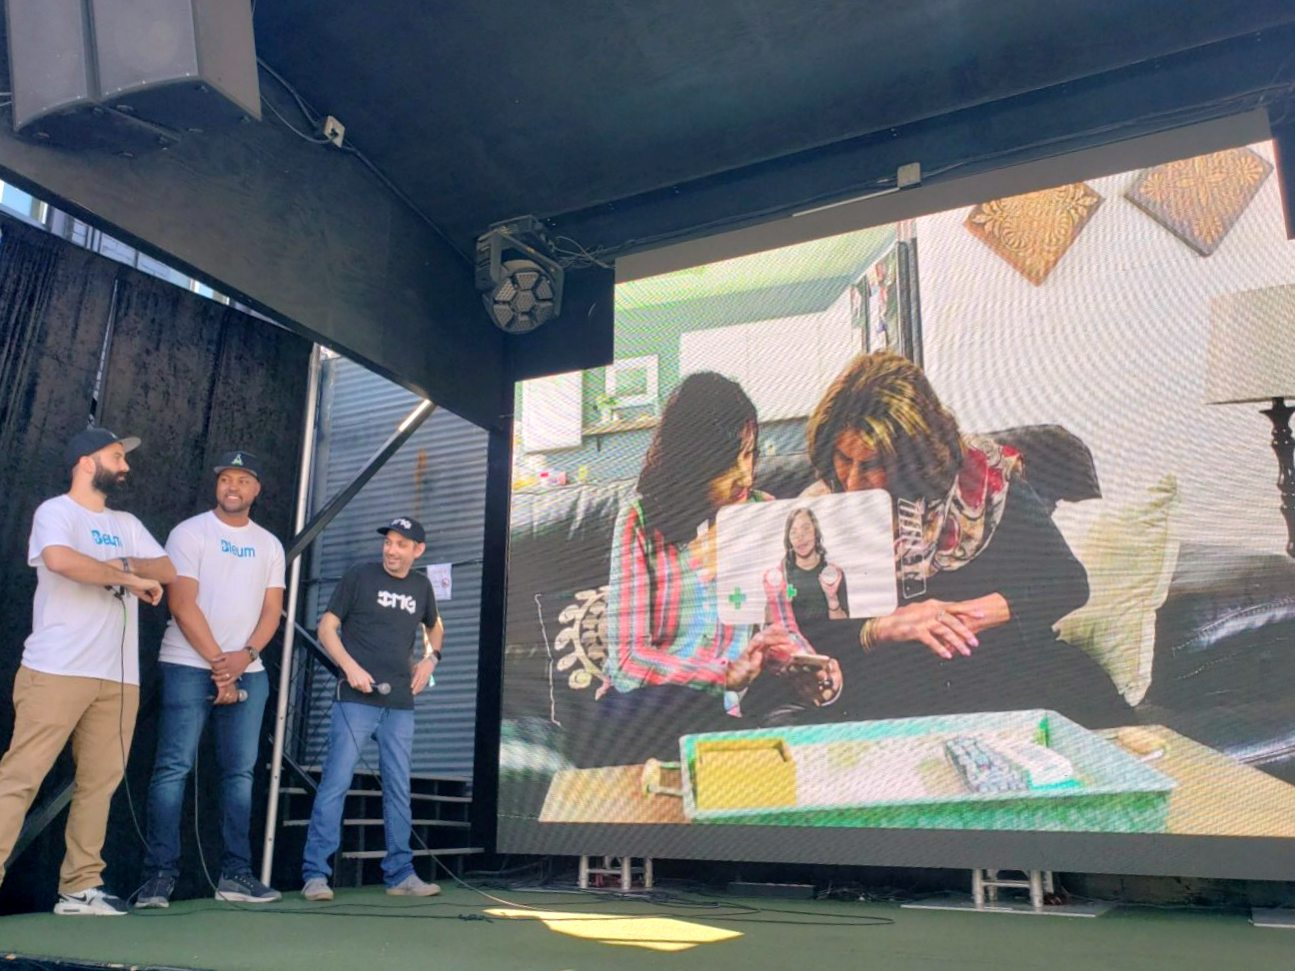 The Green Lab Debuts Augmented Reality Cannabis App at SXSW